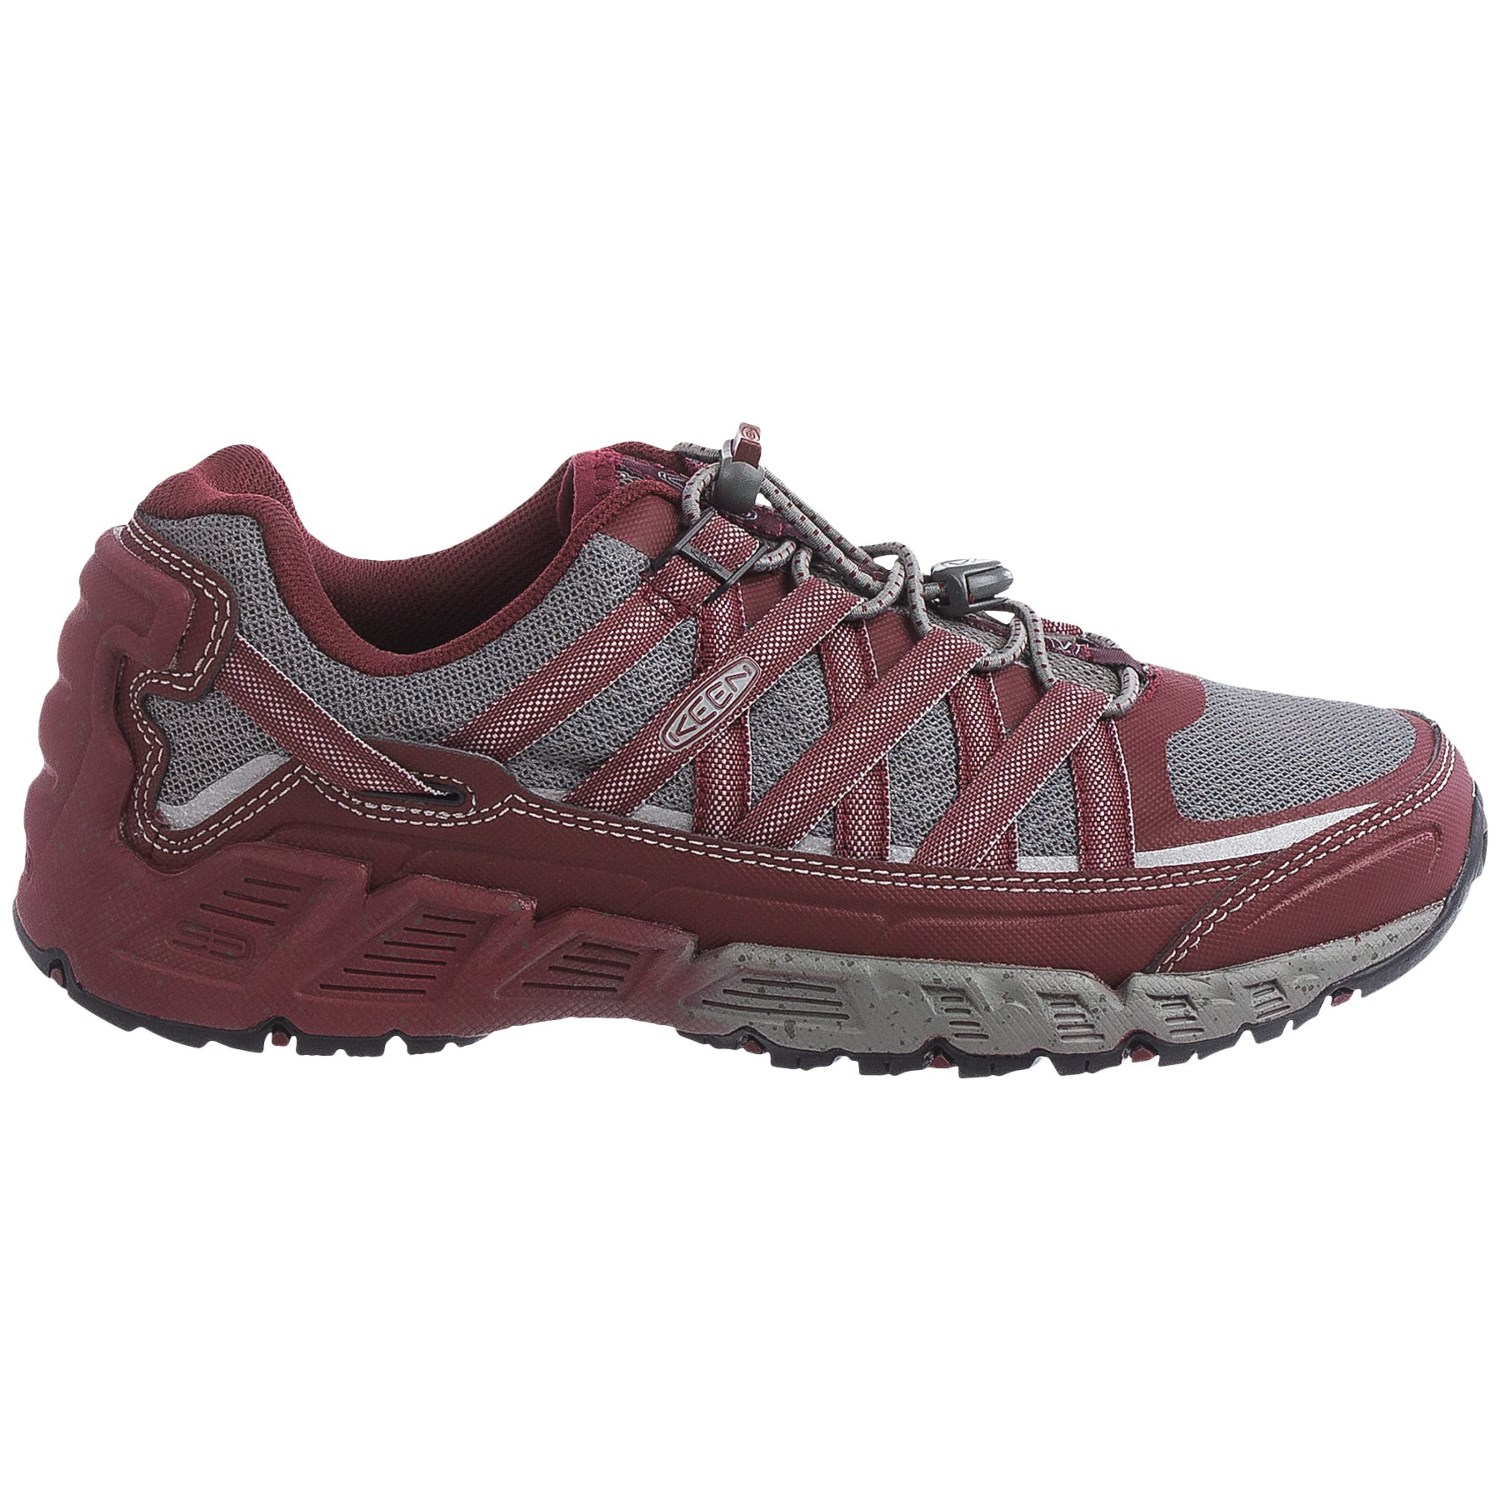 4eef30fb511 Keen Versatrail Low Hiking Shoes (For Women) - Save 75%